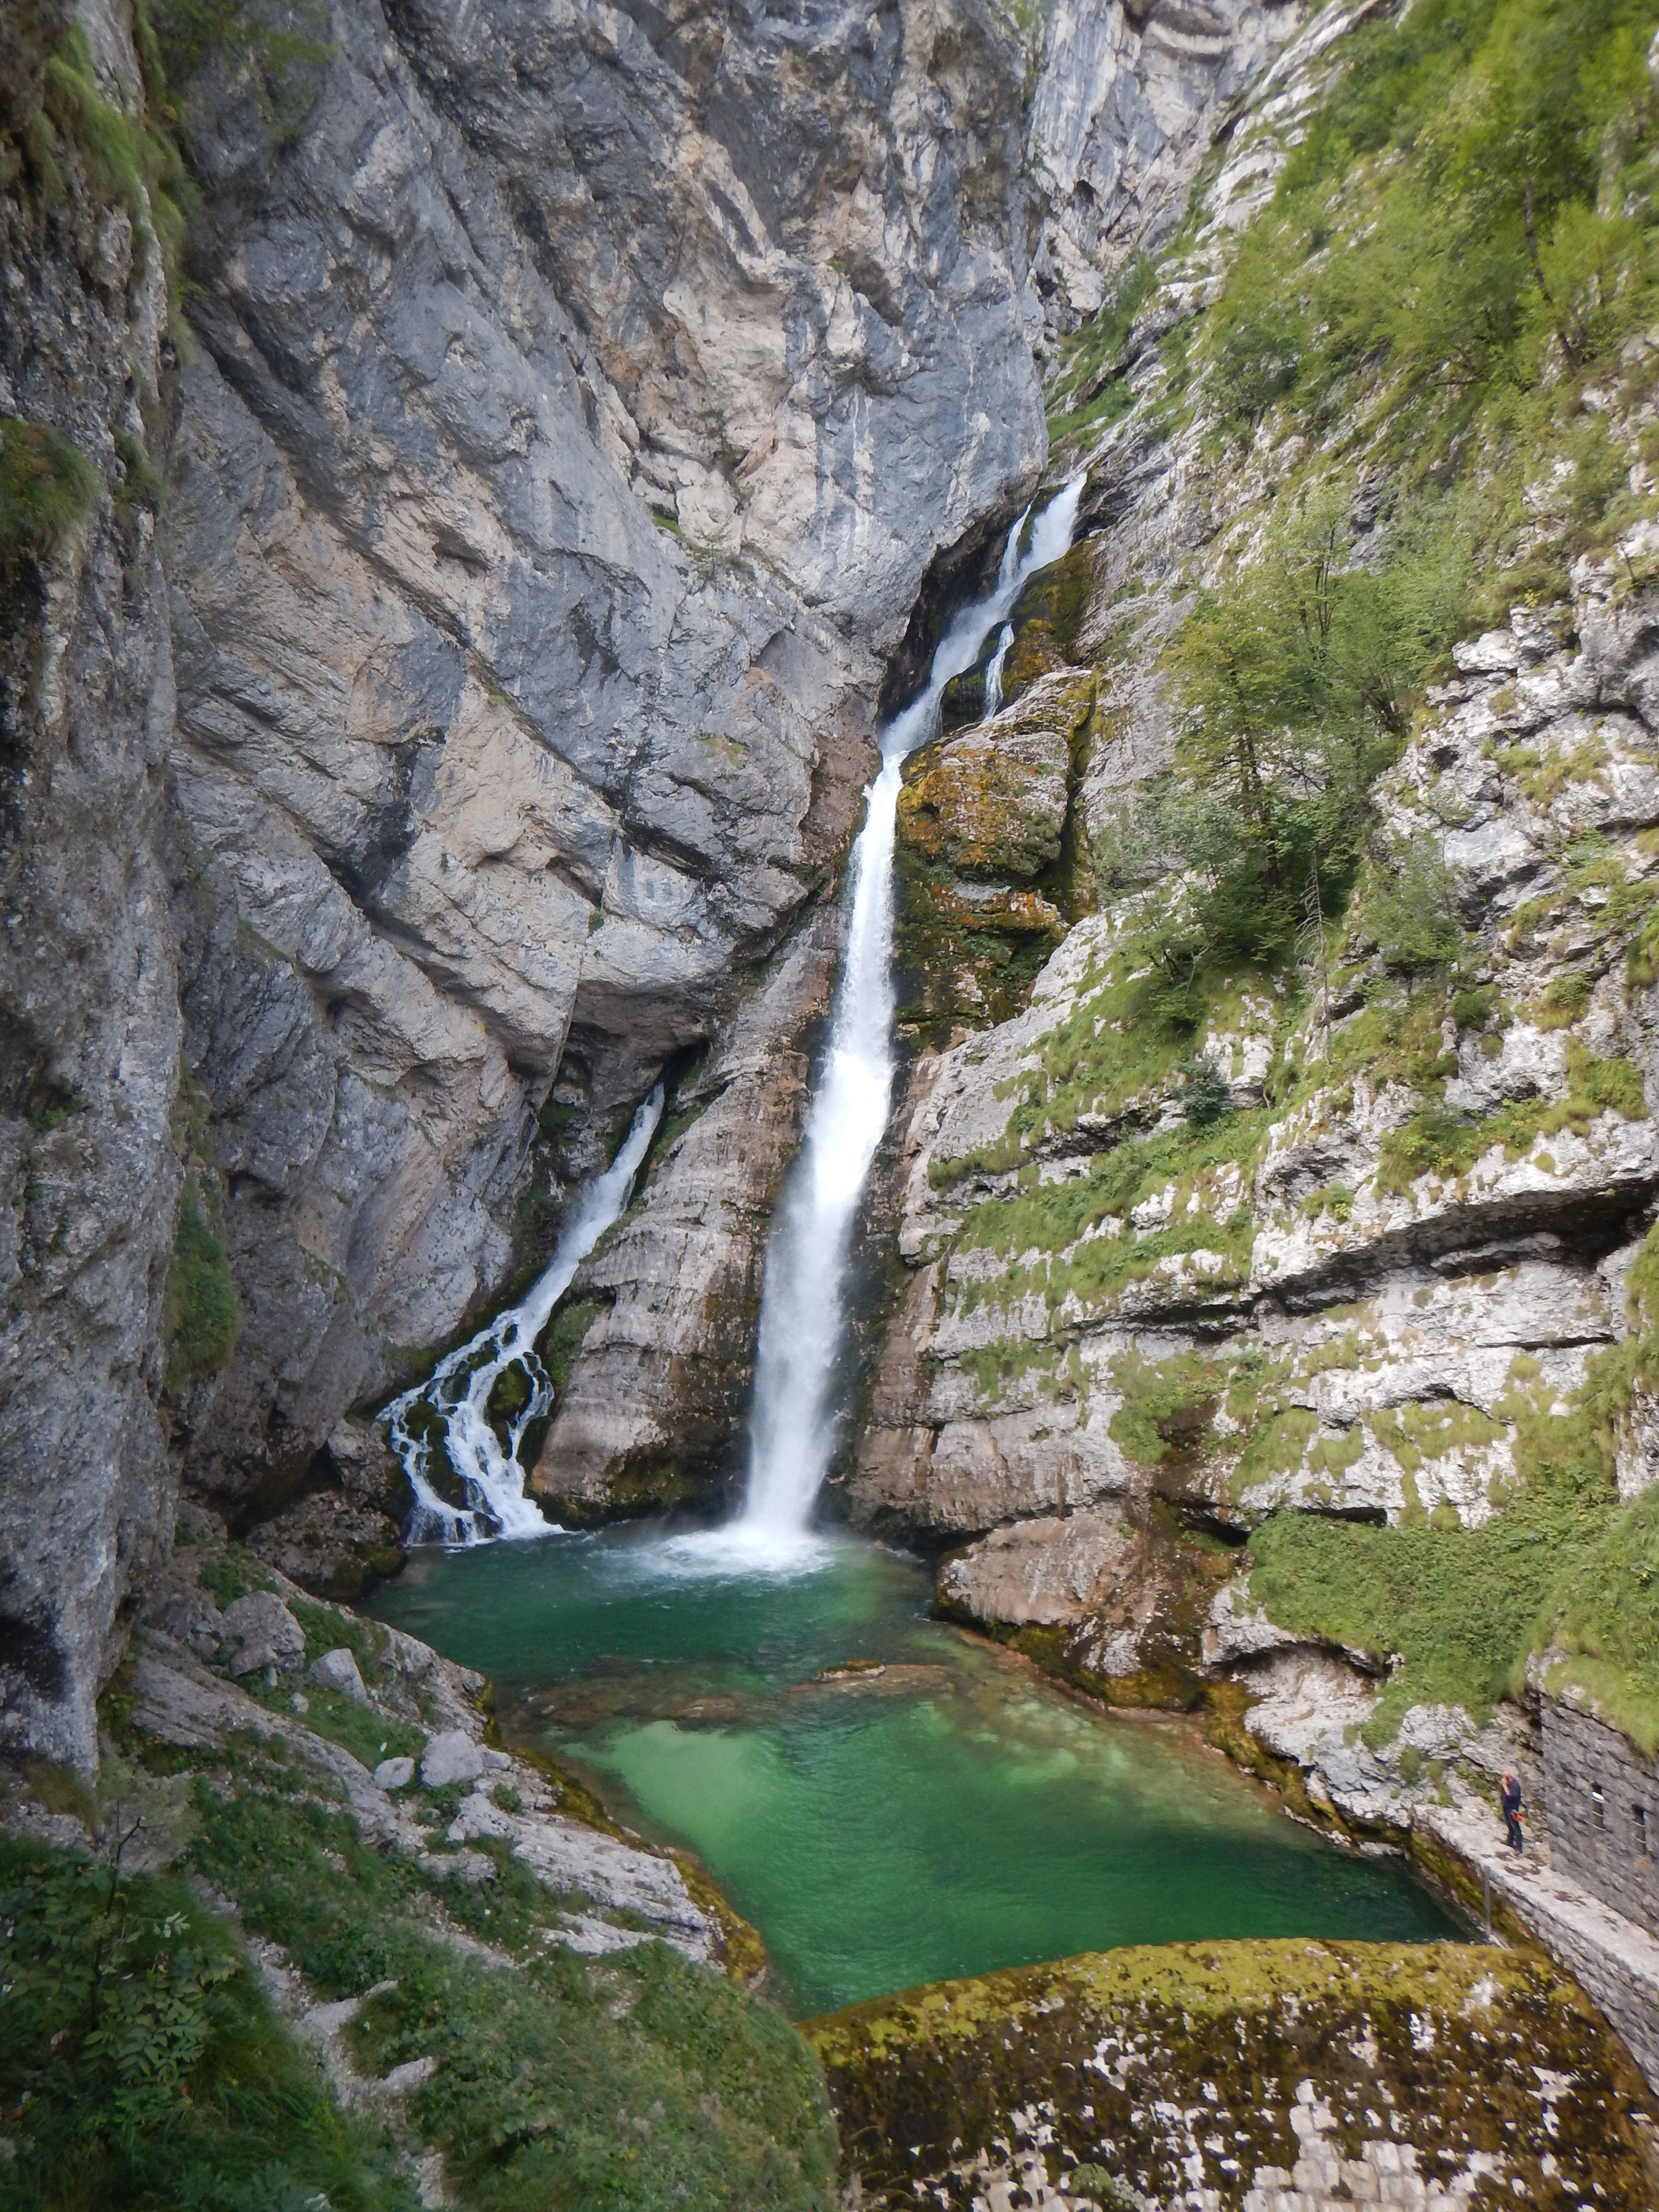 Slap Savica waterfall.